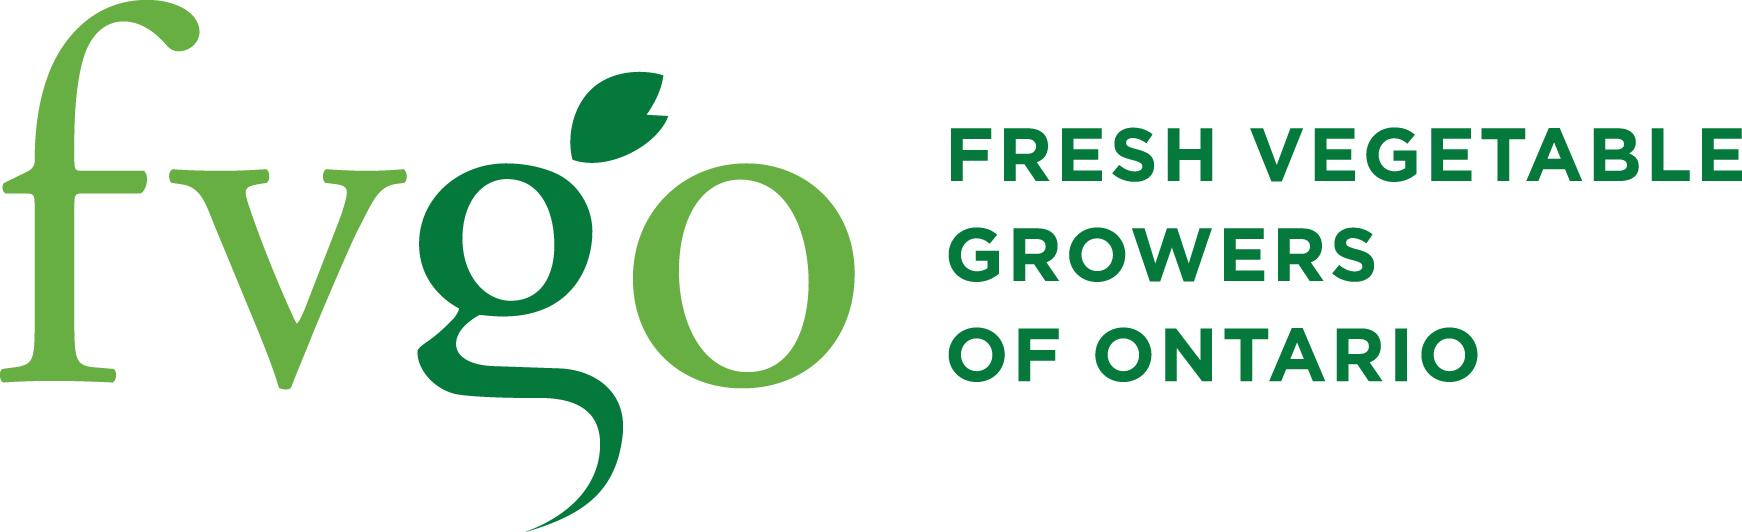 Fresh Vegetable Growers of Ontario Logo